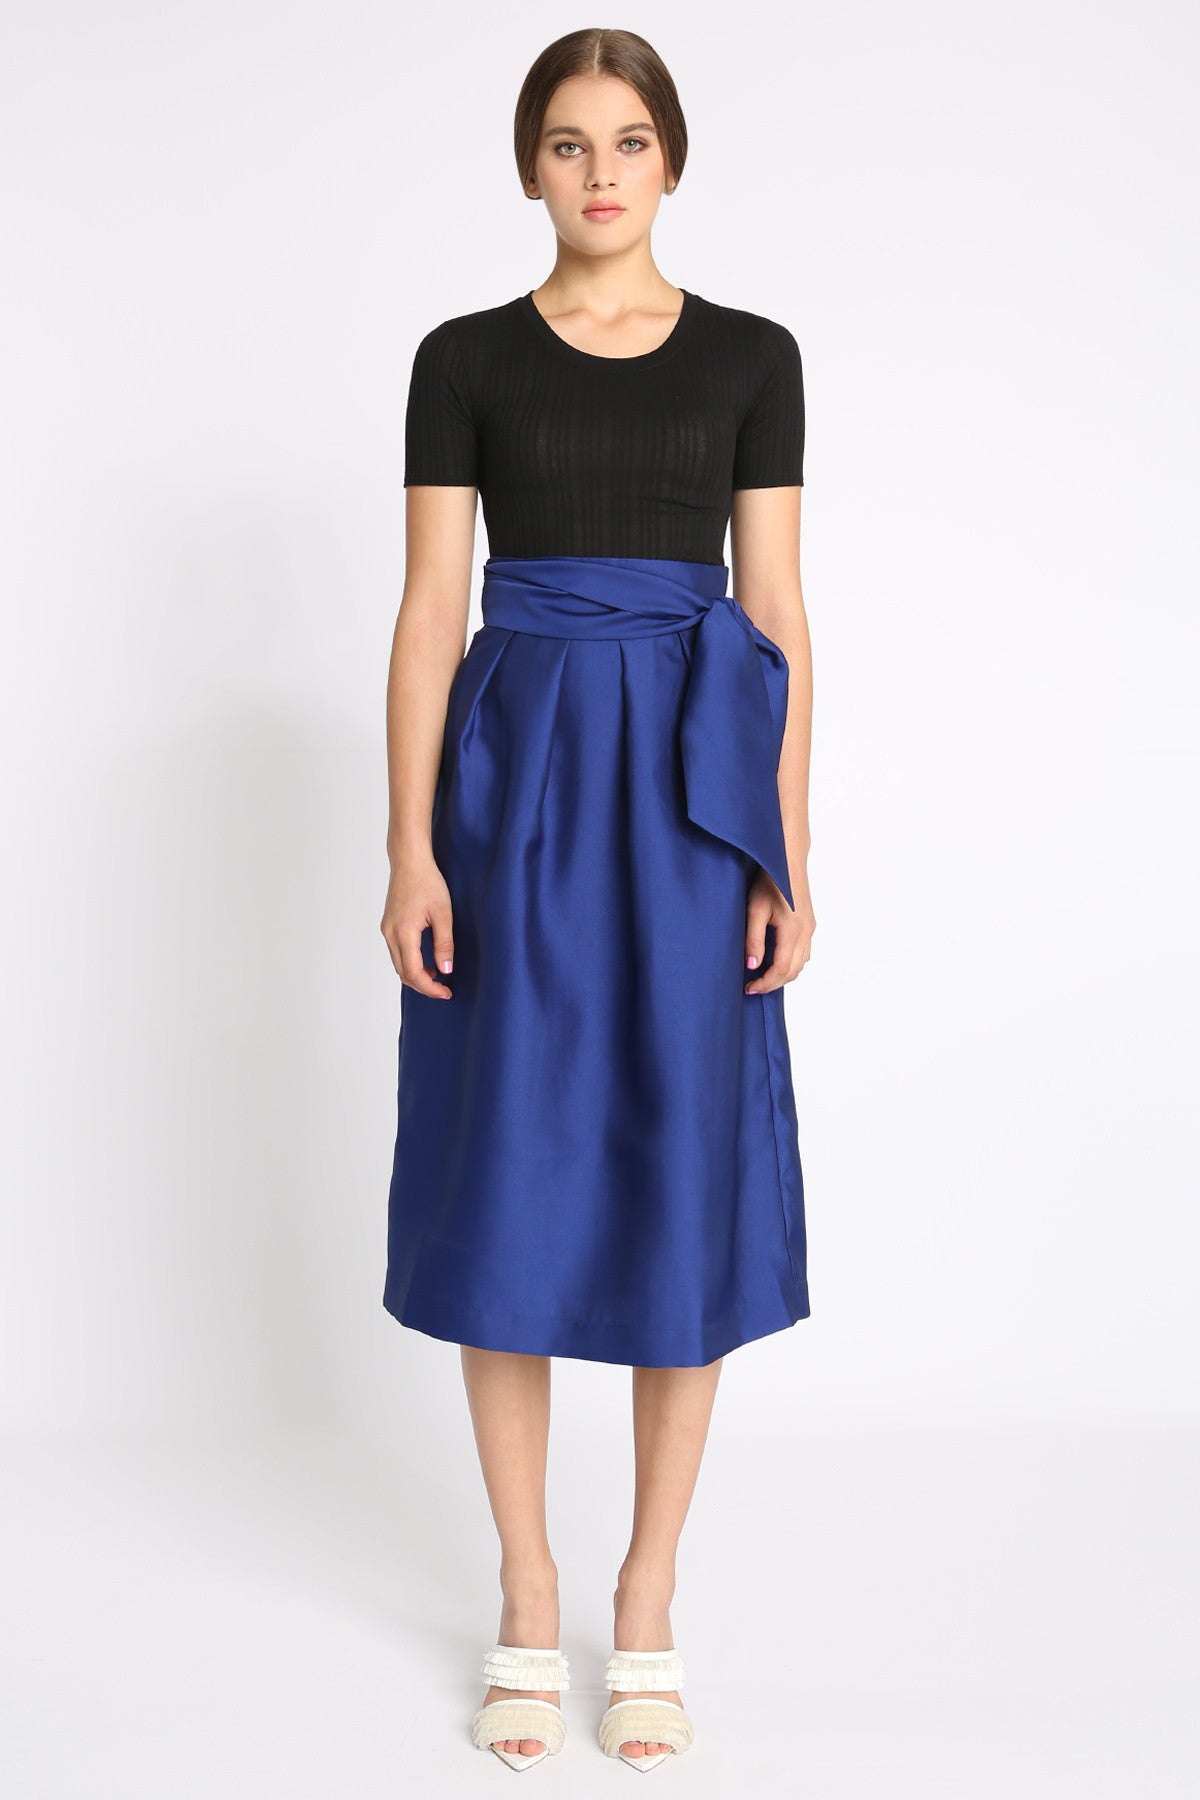 Midi Yves High Waist Side Sash Skirt